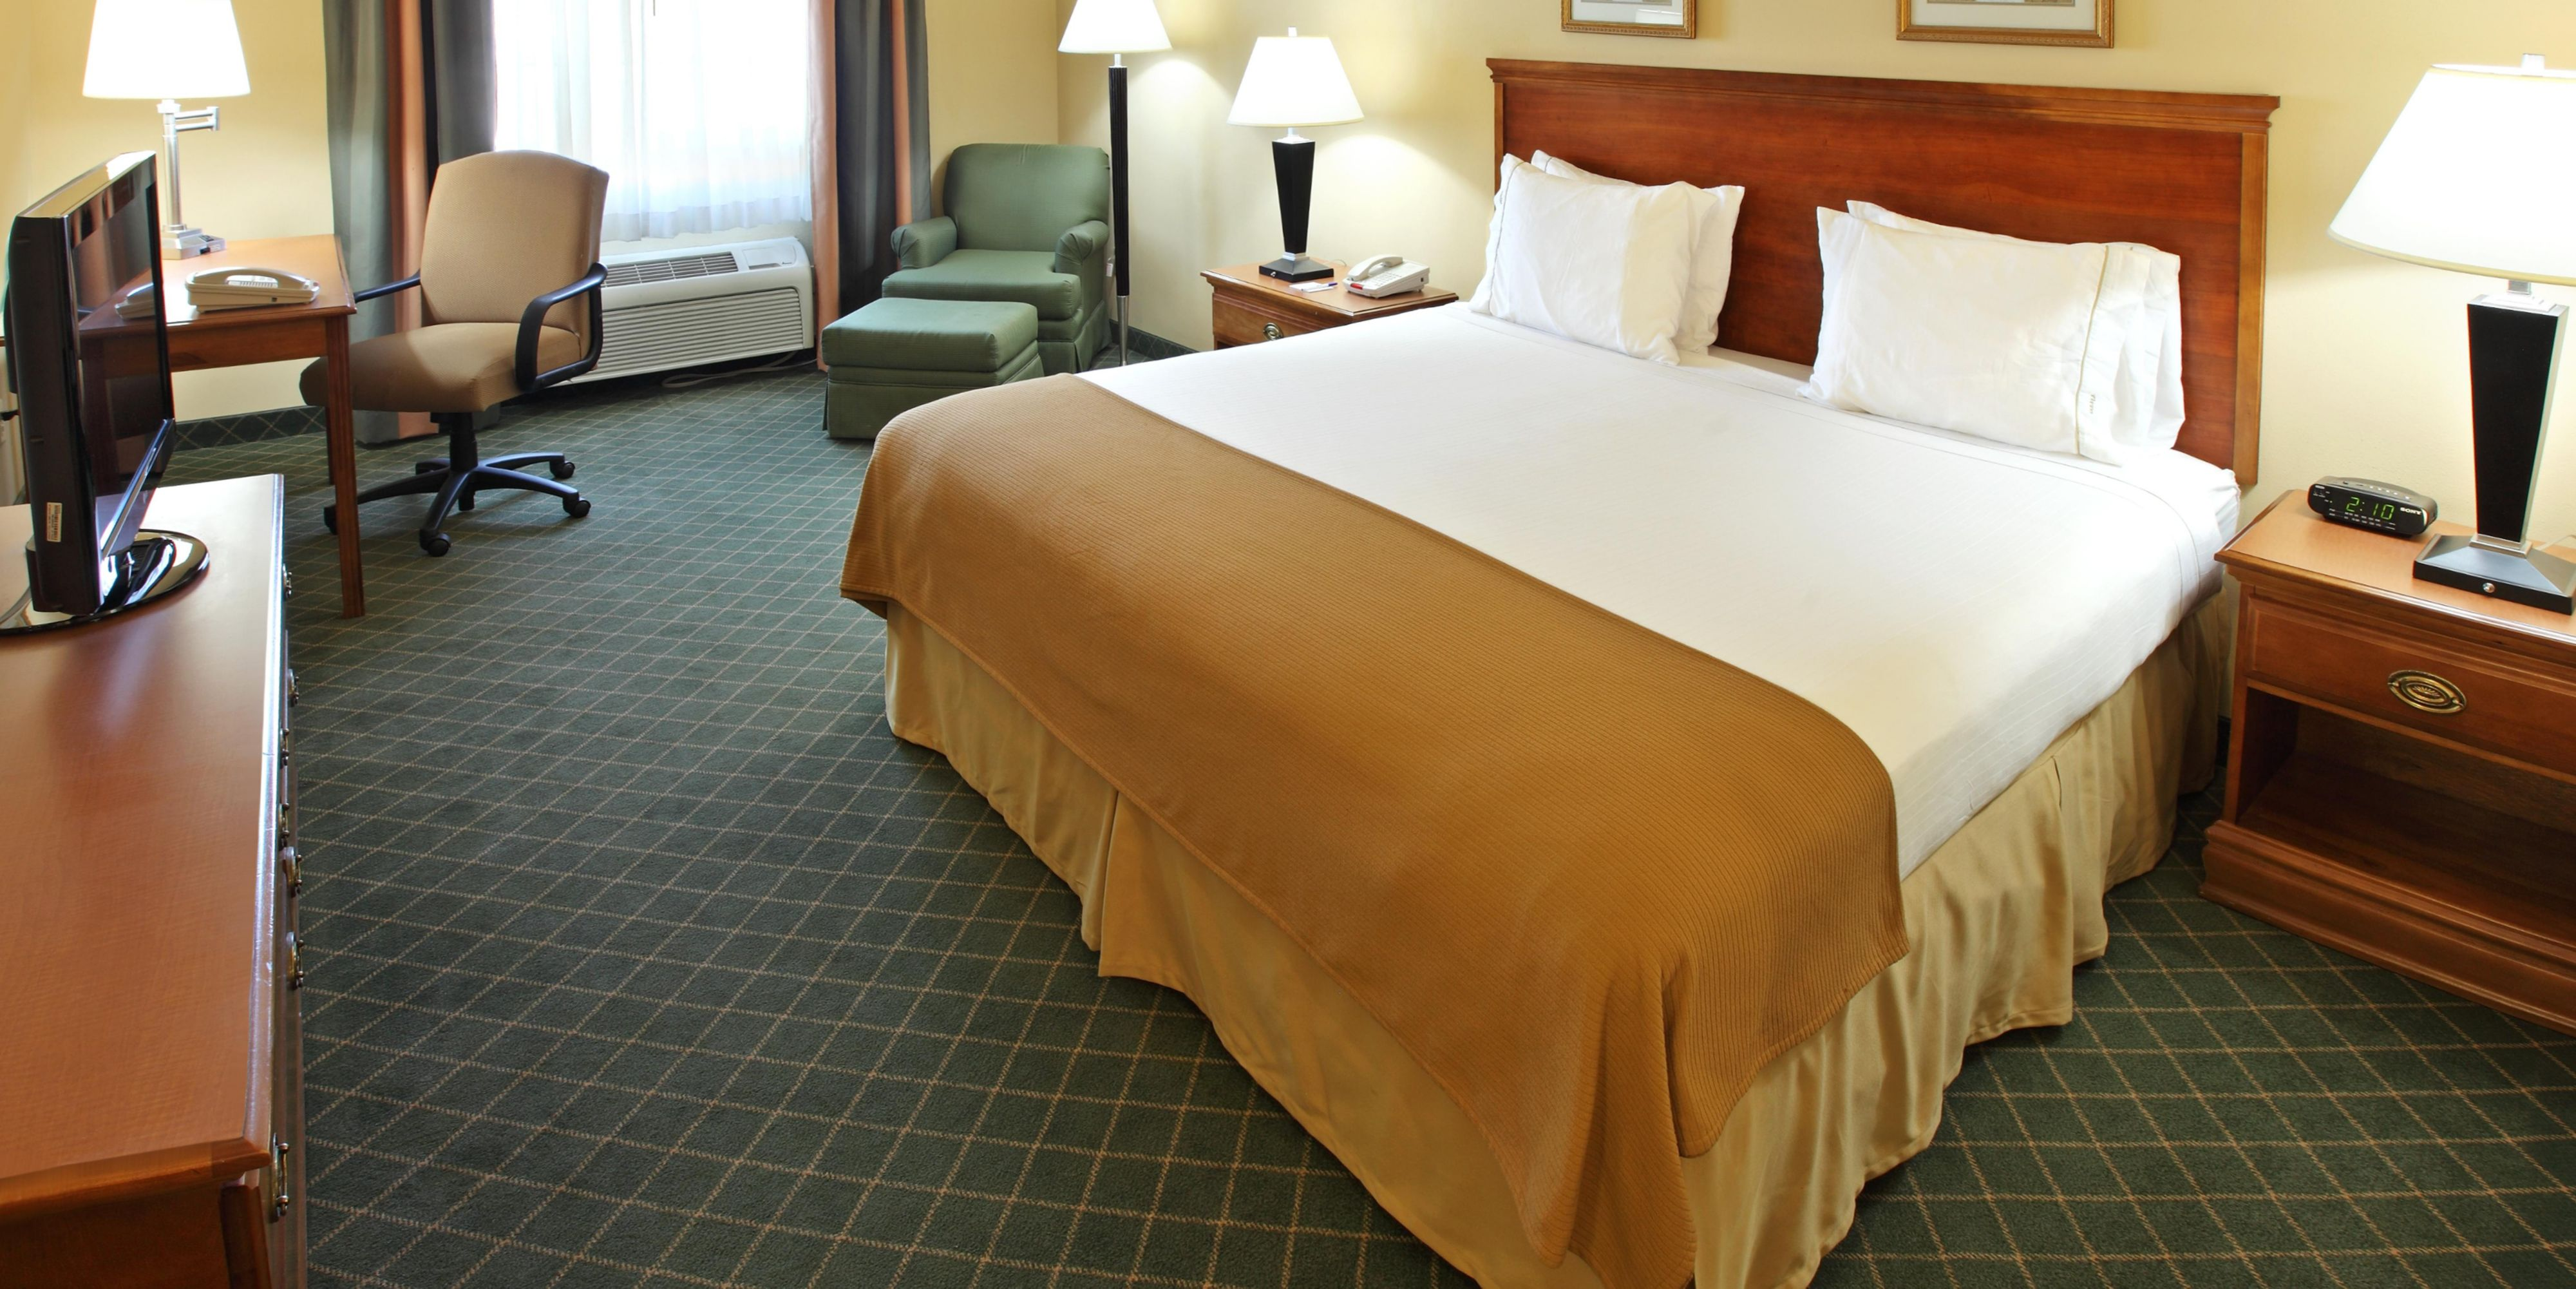 Holiday Inn Express And Suites Magnolia 4284887744 2x1